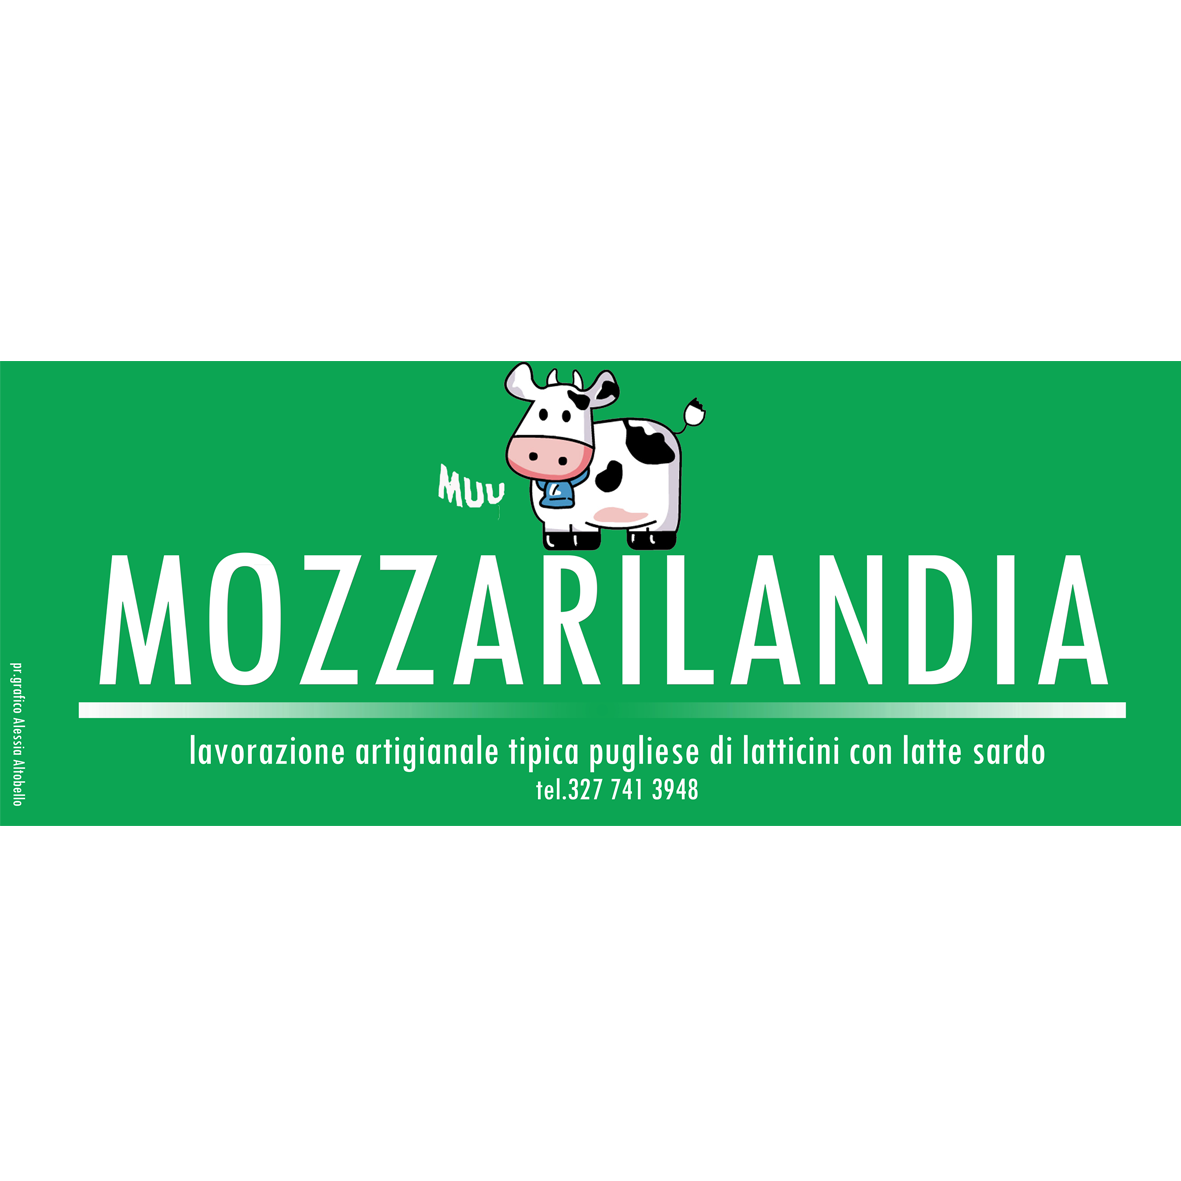 MOZZARILLANDIA